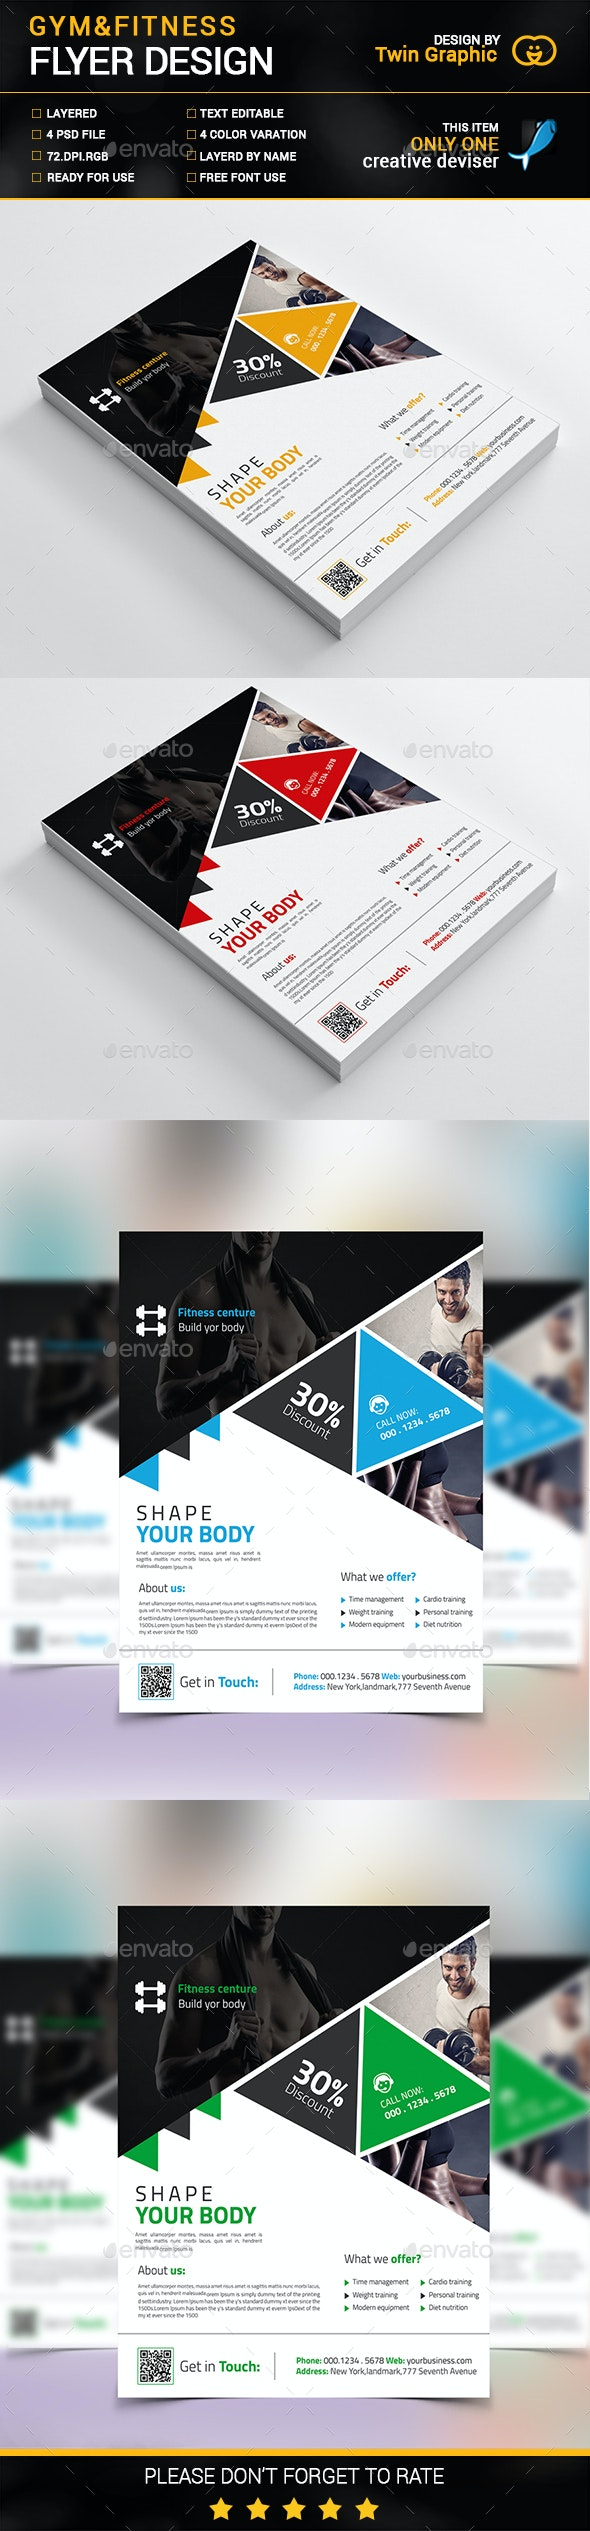 Gym&Fitness Flyer Design - Corporate Flyers